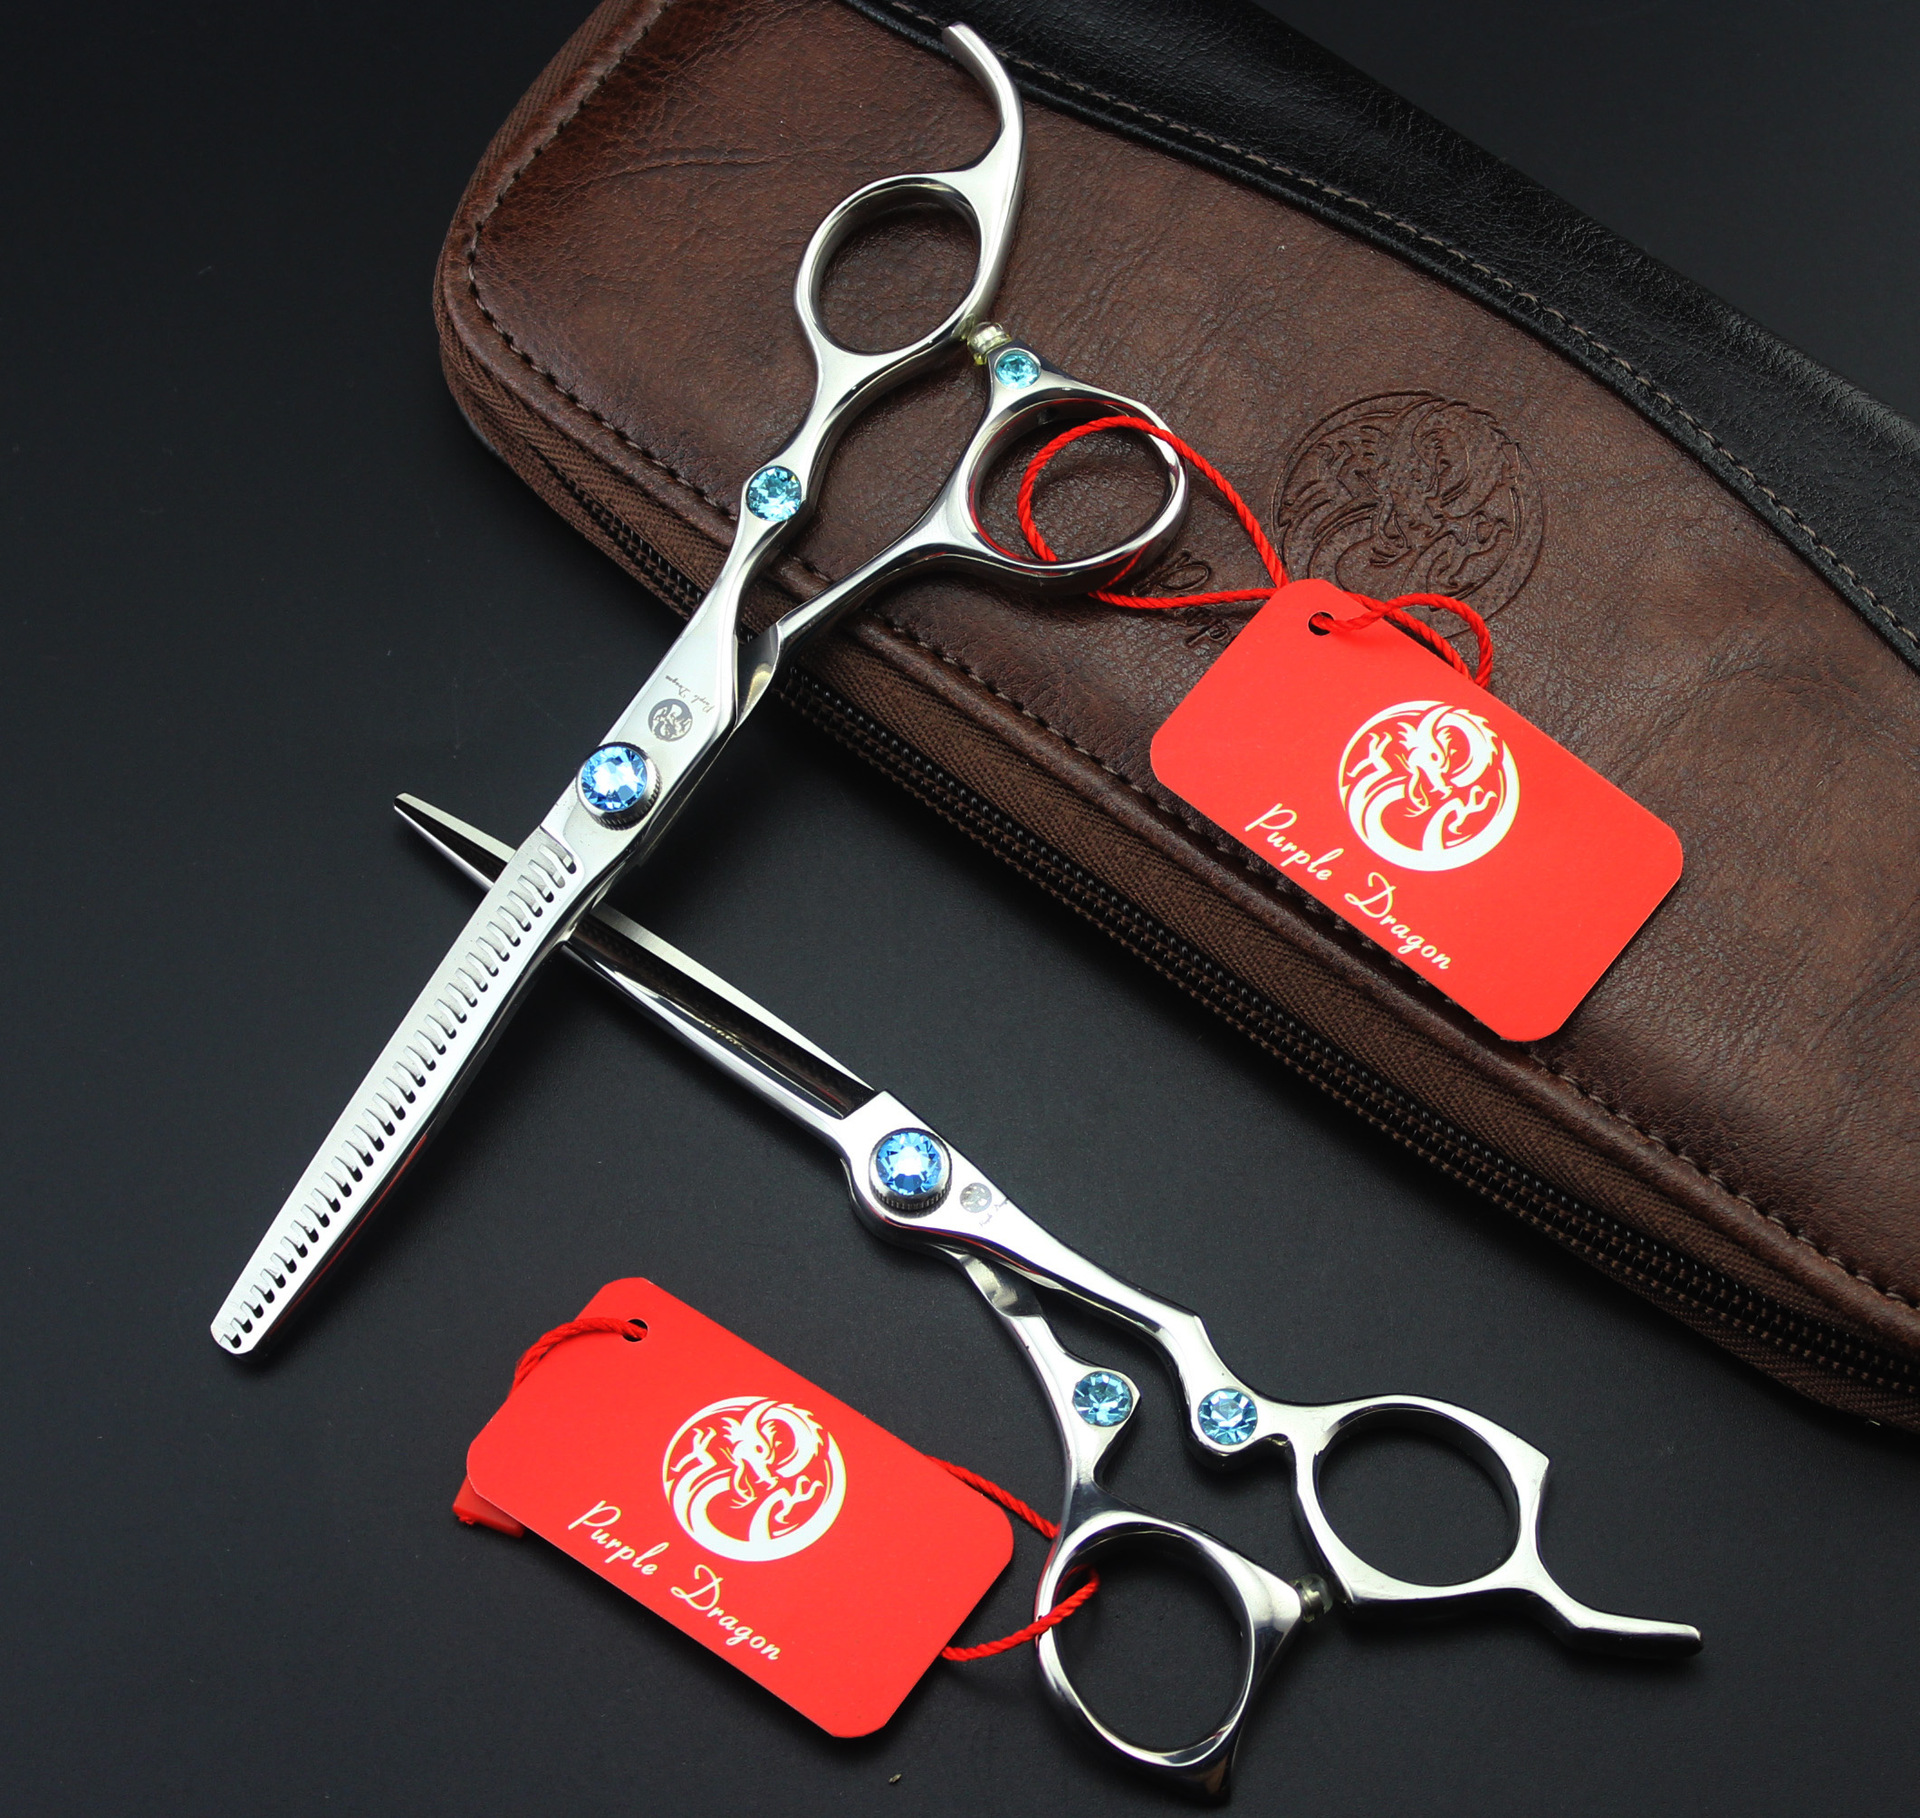 6 Inch Professional Hair Scissors Hairdressing Tools Barber Hair Cutting6 Inch Professional Hair Scissors Hairdressing Tools Barber Hair Cutting